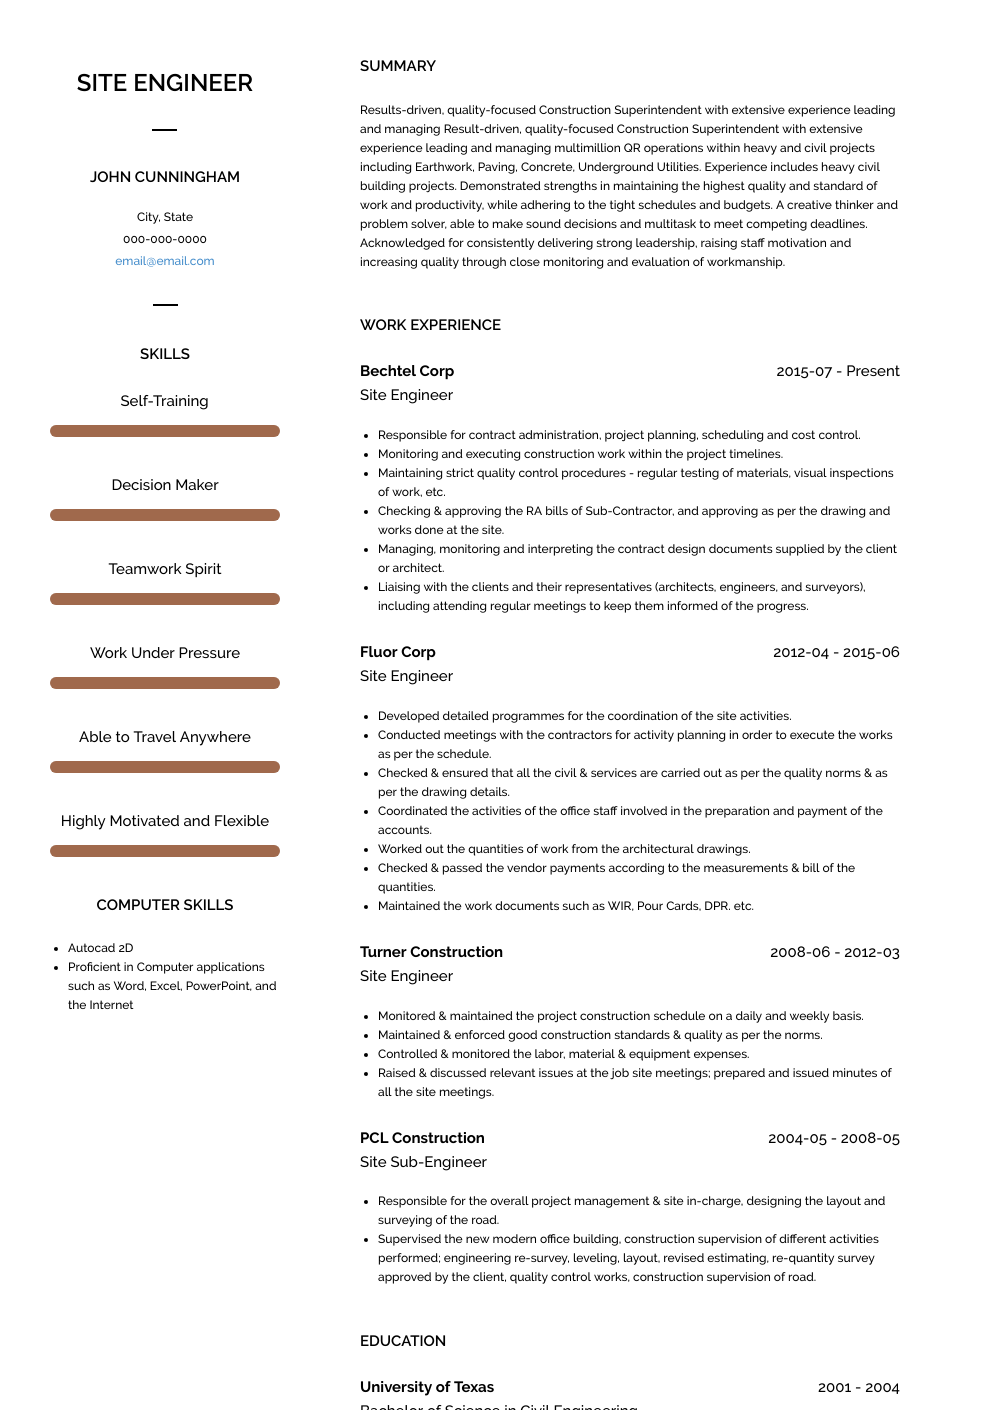 experience section of resume examples